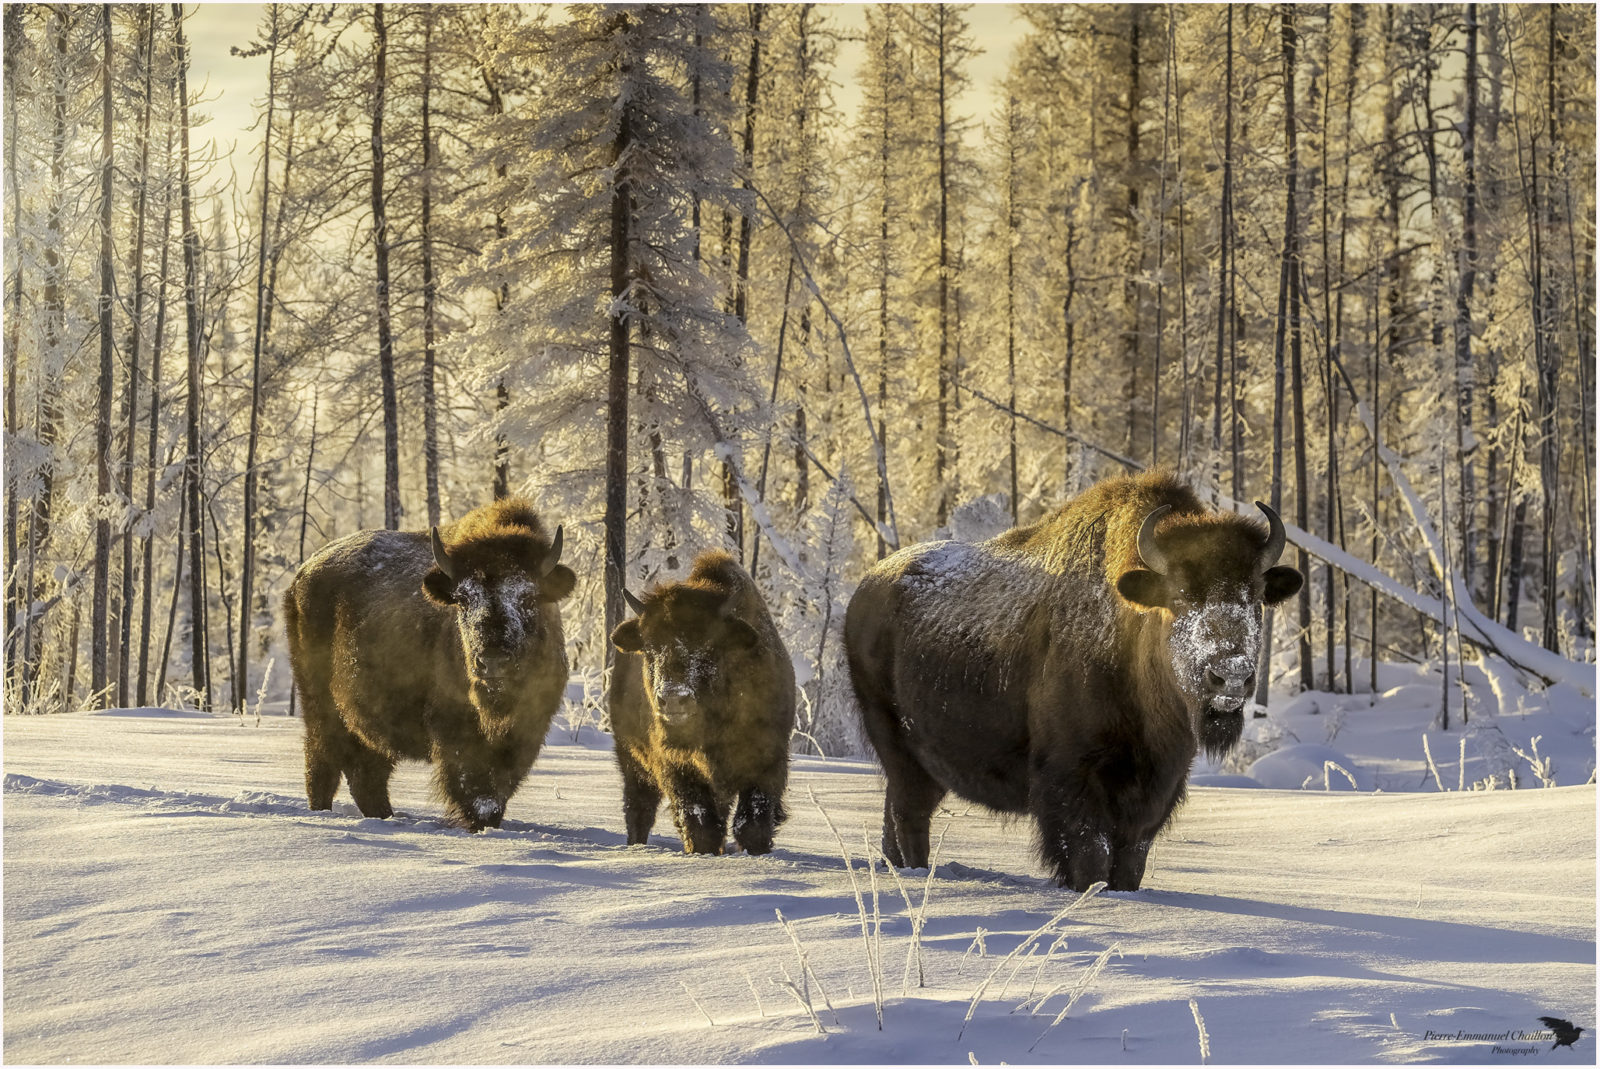 Buffalo on the snow